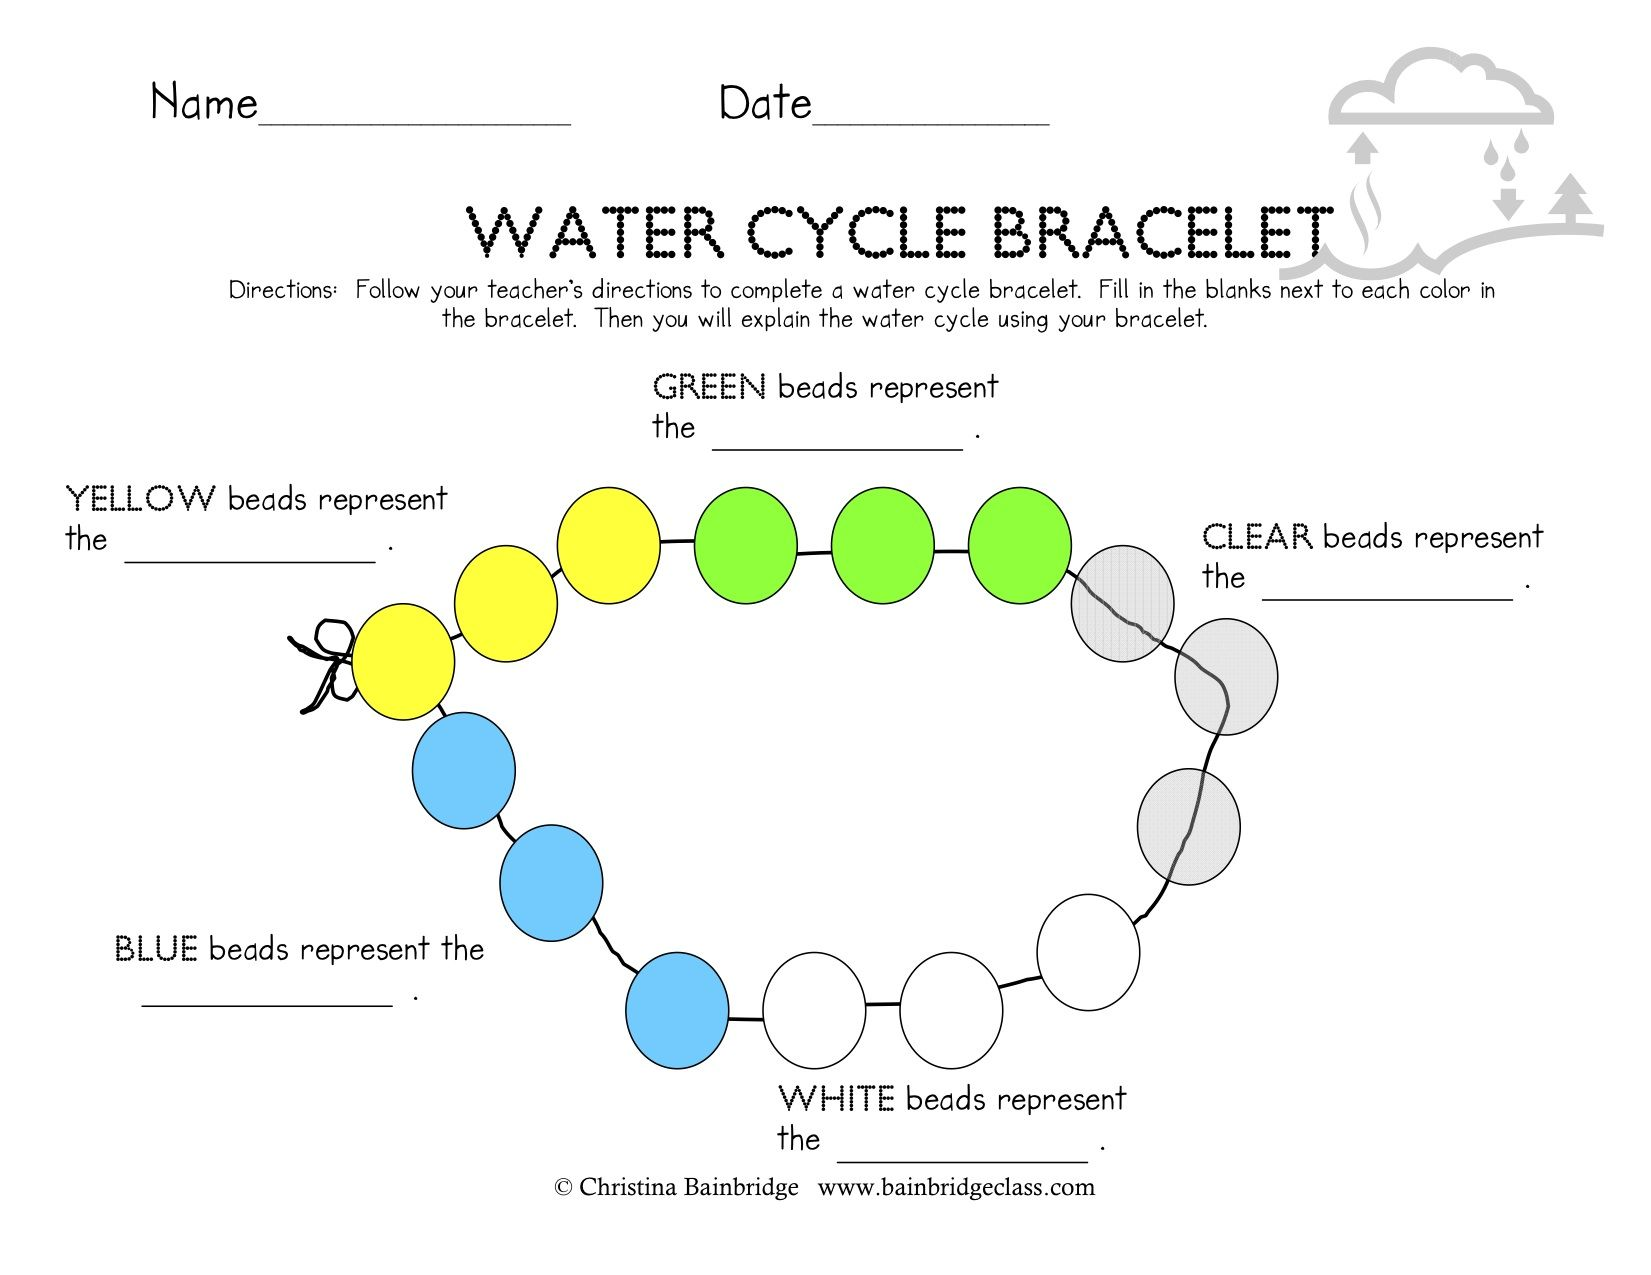 Worksheets Water Cycle Worksheets water cycle bracelets science pinterest teaching bracelets